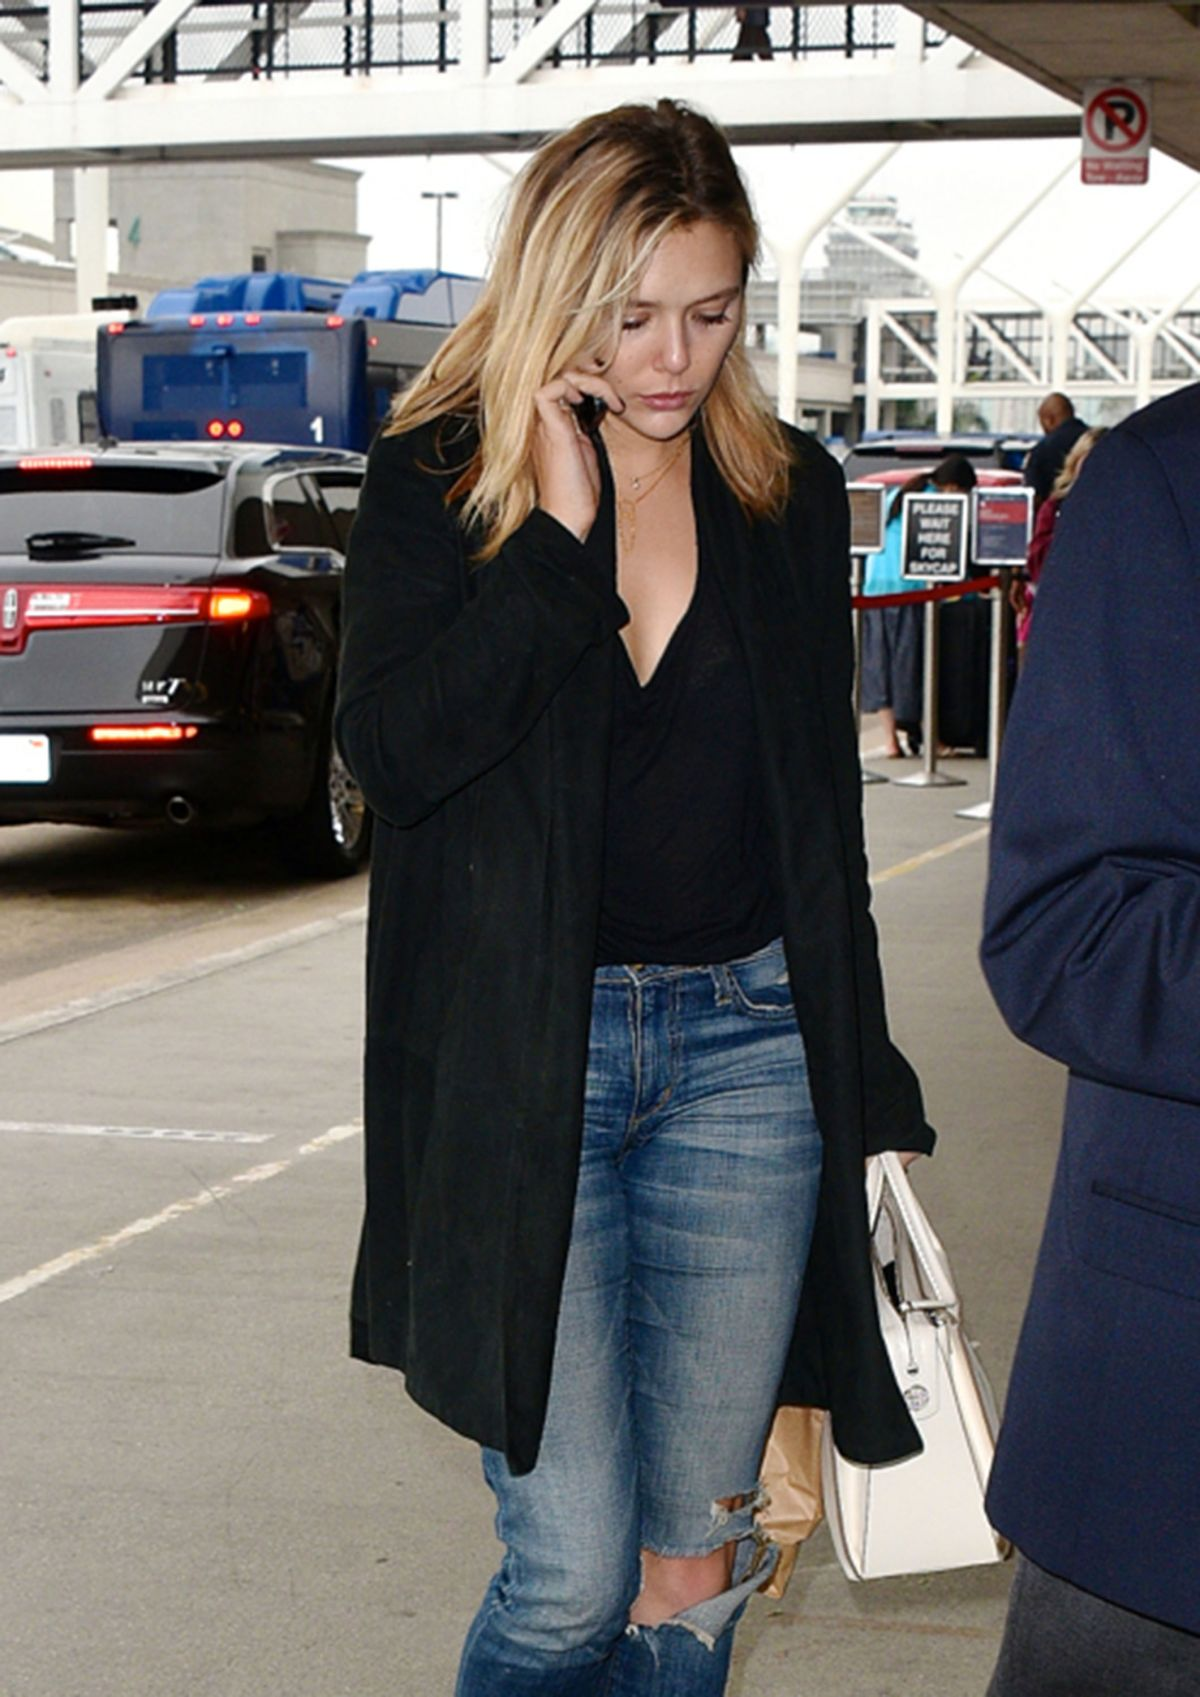 ELIZABETH OLSEN in Ripped Jeans at LAX Airport in Los Angeles 10/16/2015